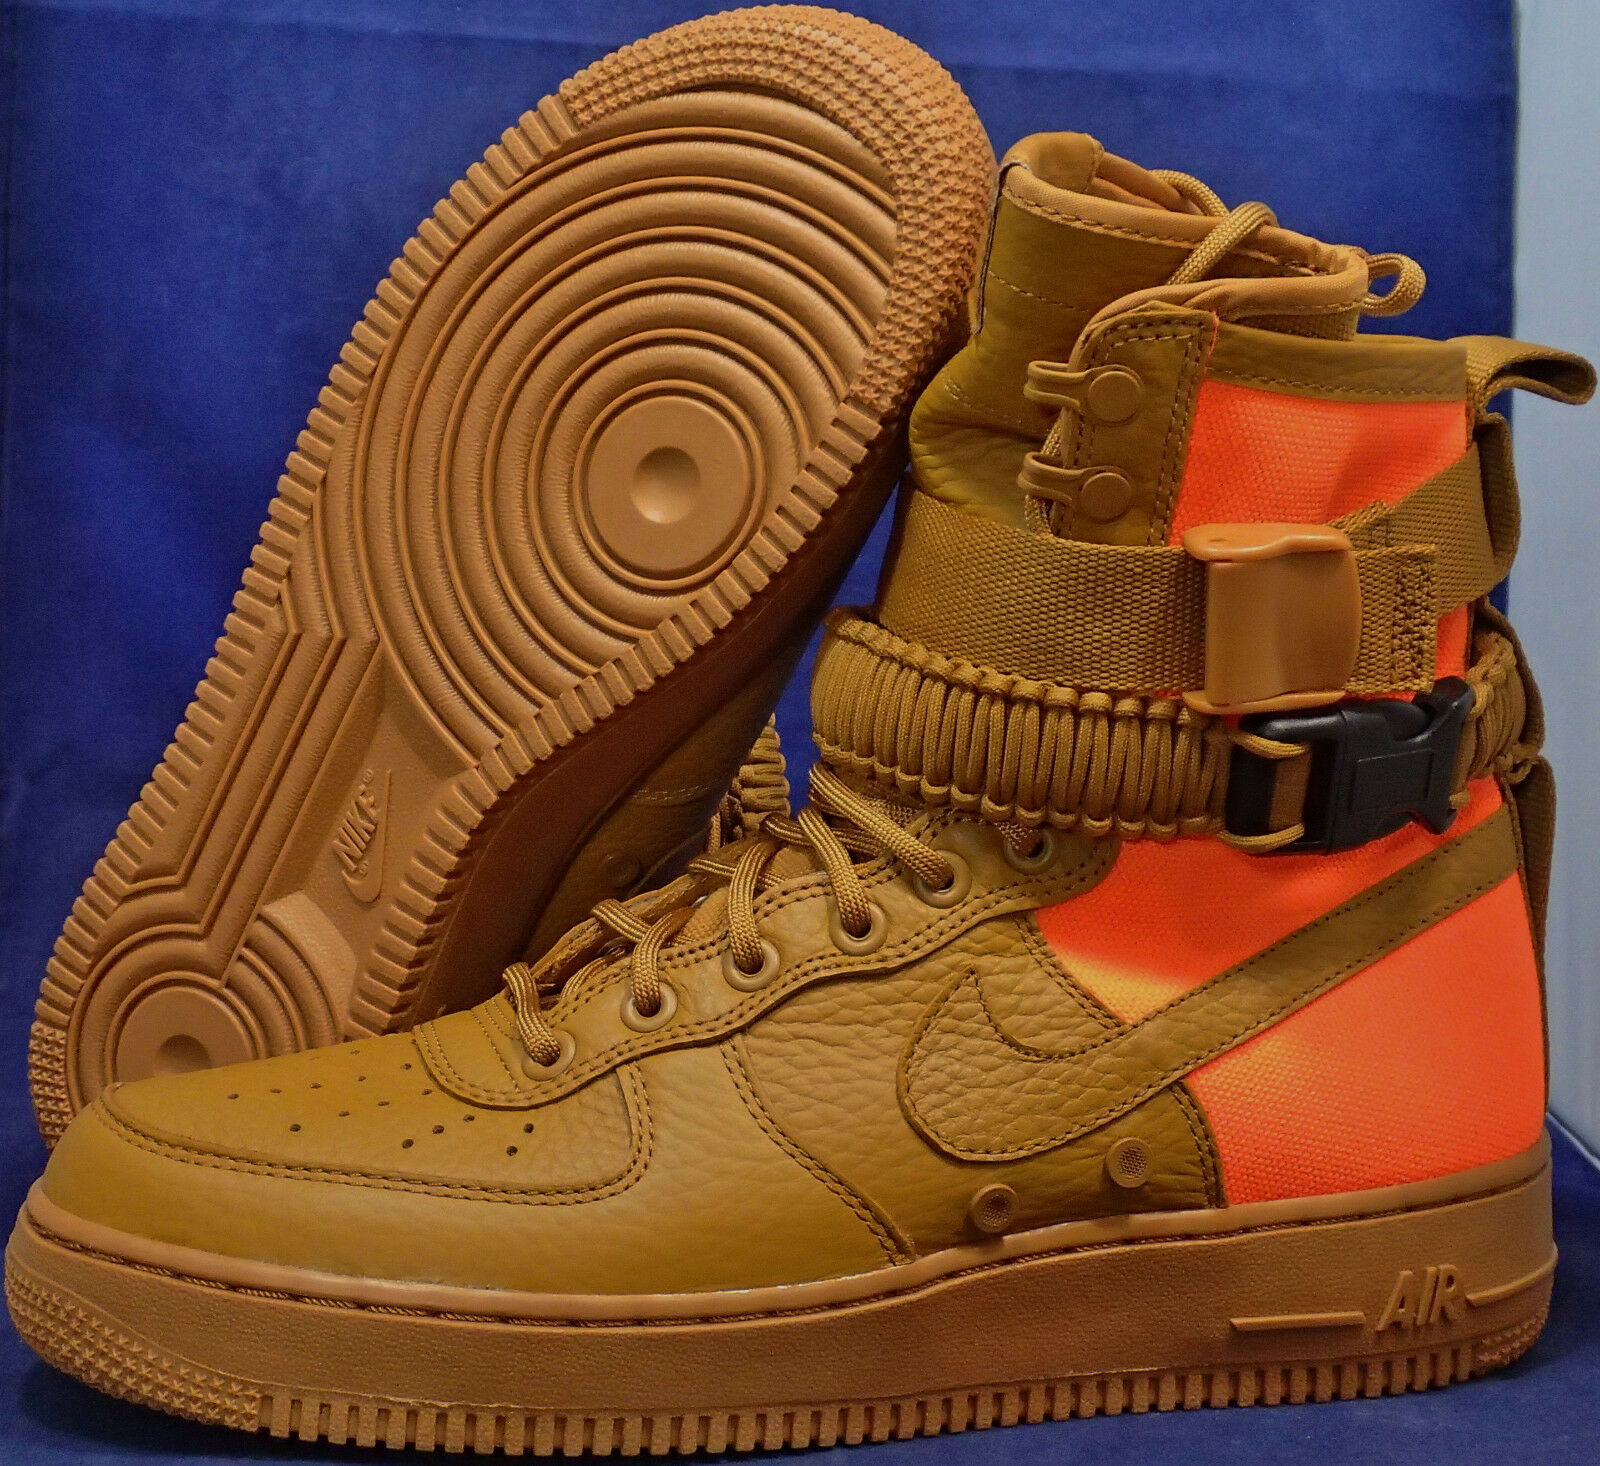 Nike SF Air Obliger 1 QS Desert Ochre Brown Orange AF1 SZ 11.5 ( 903270-778 )